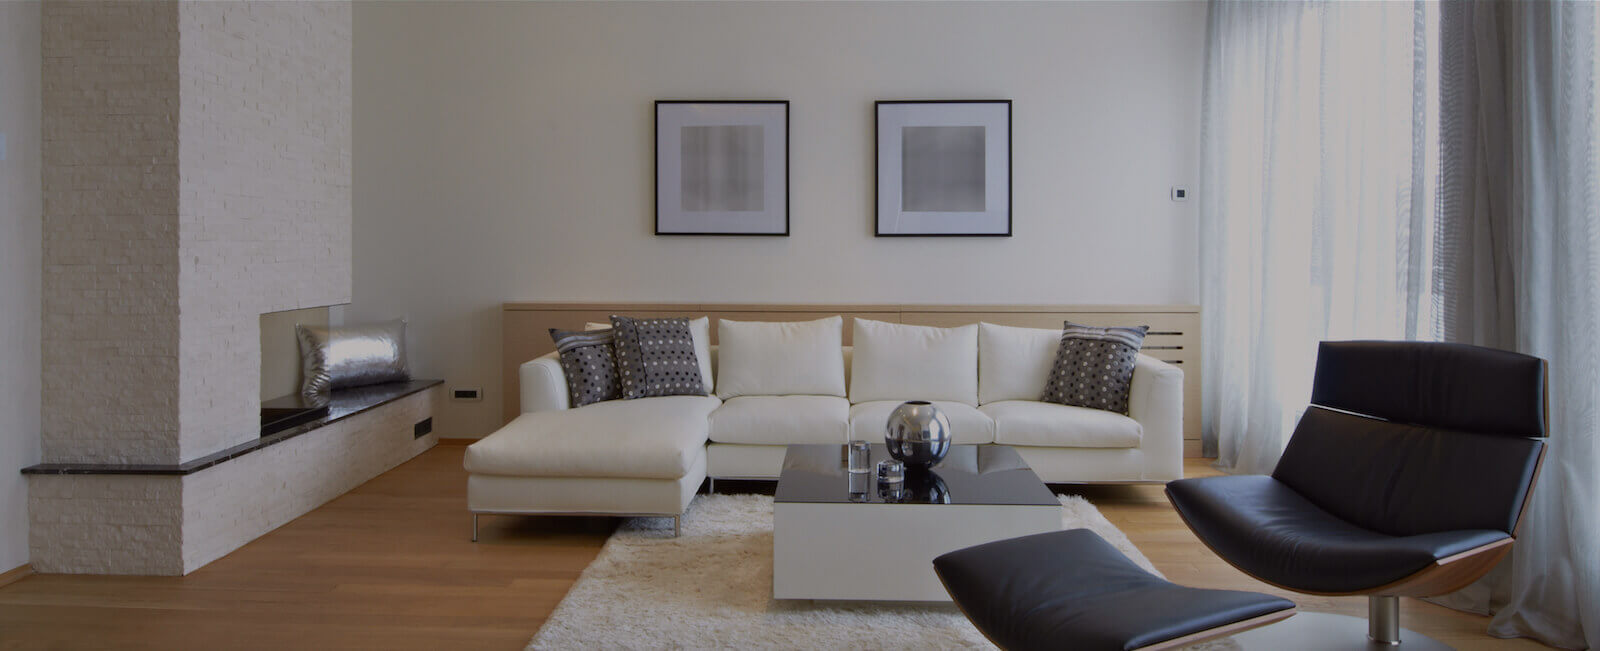 NYC House Cleaning Service  Maid Service  Apartment Cleaning New York NY  2123810499